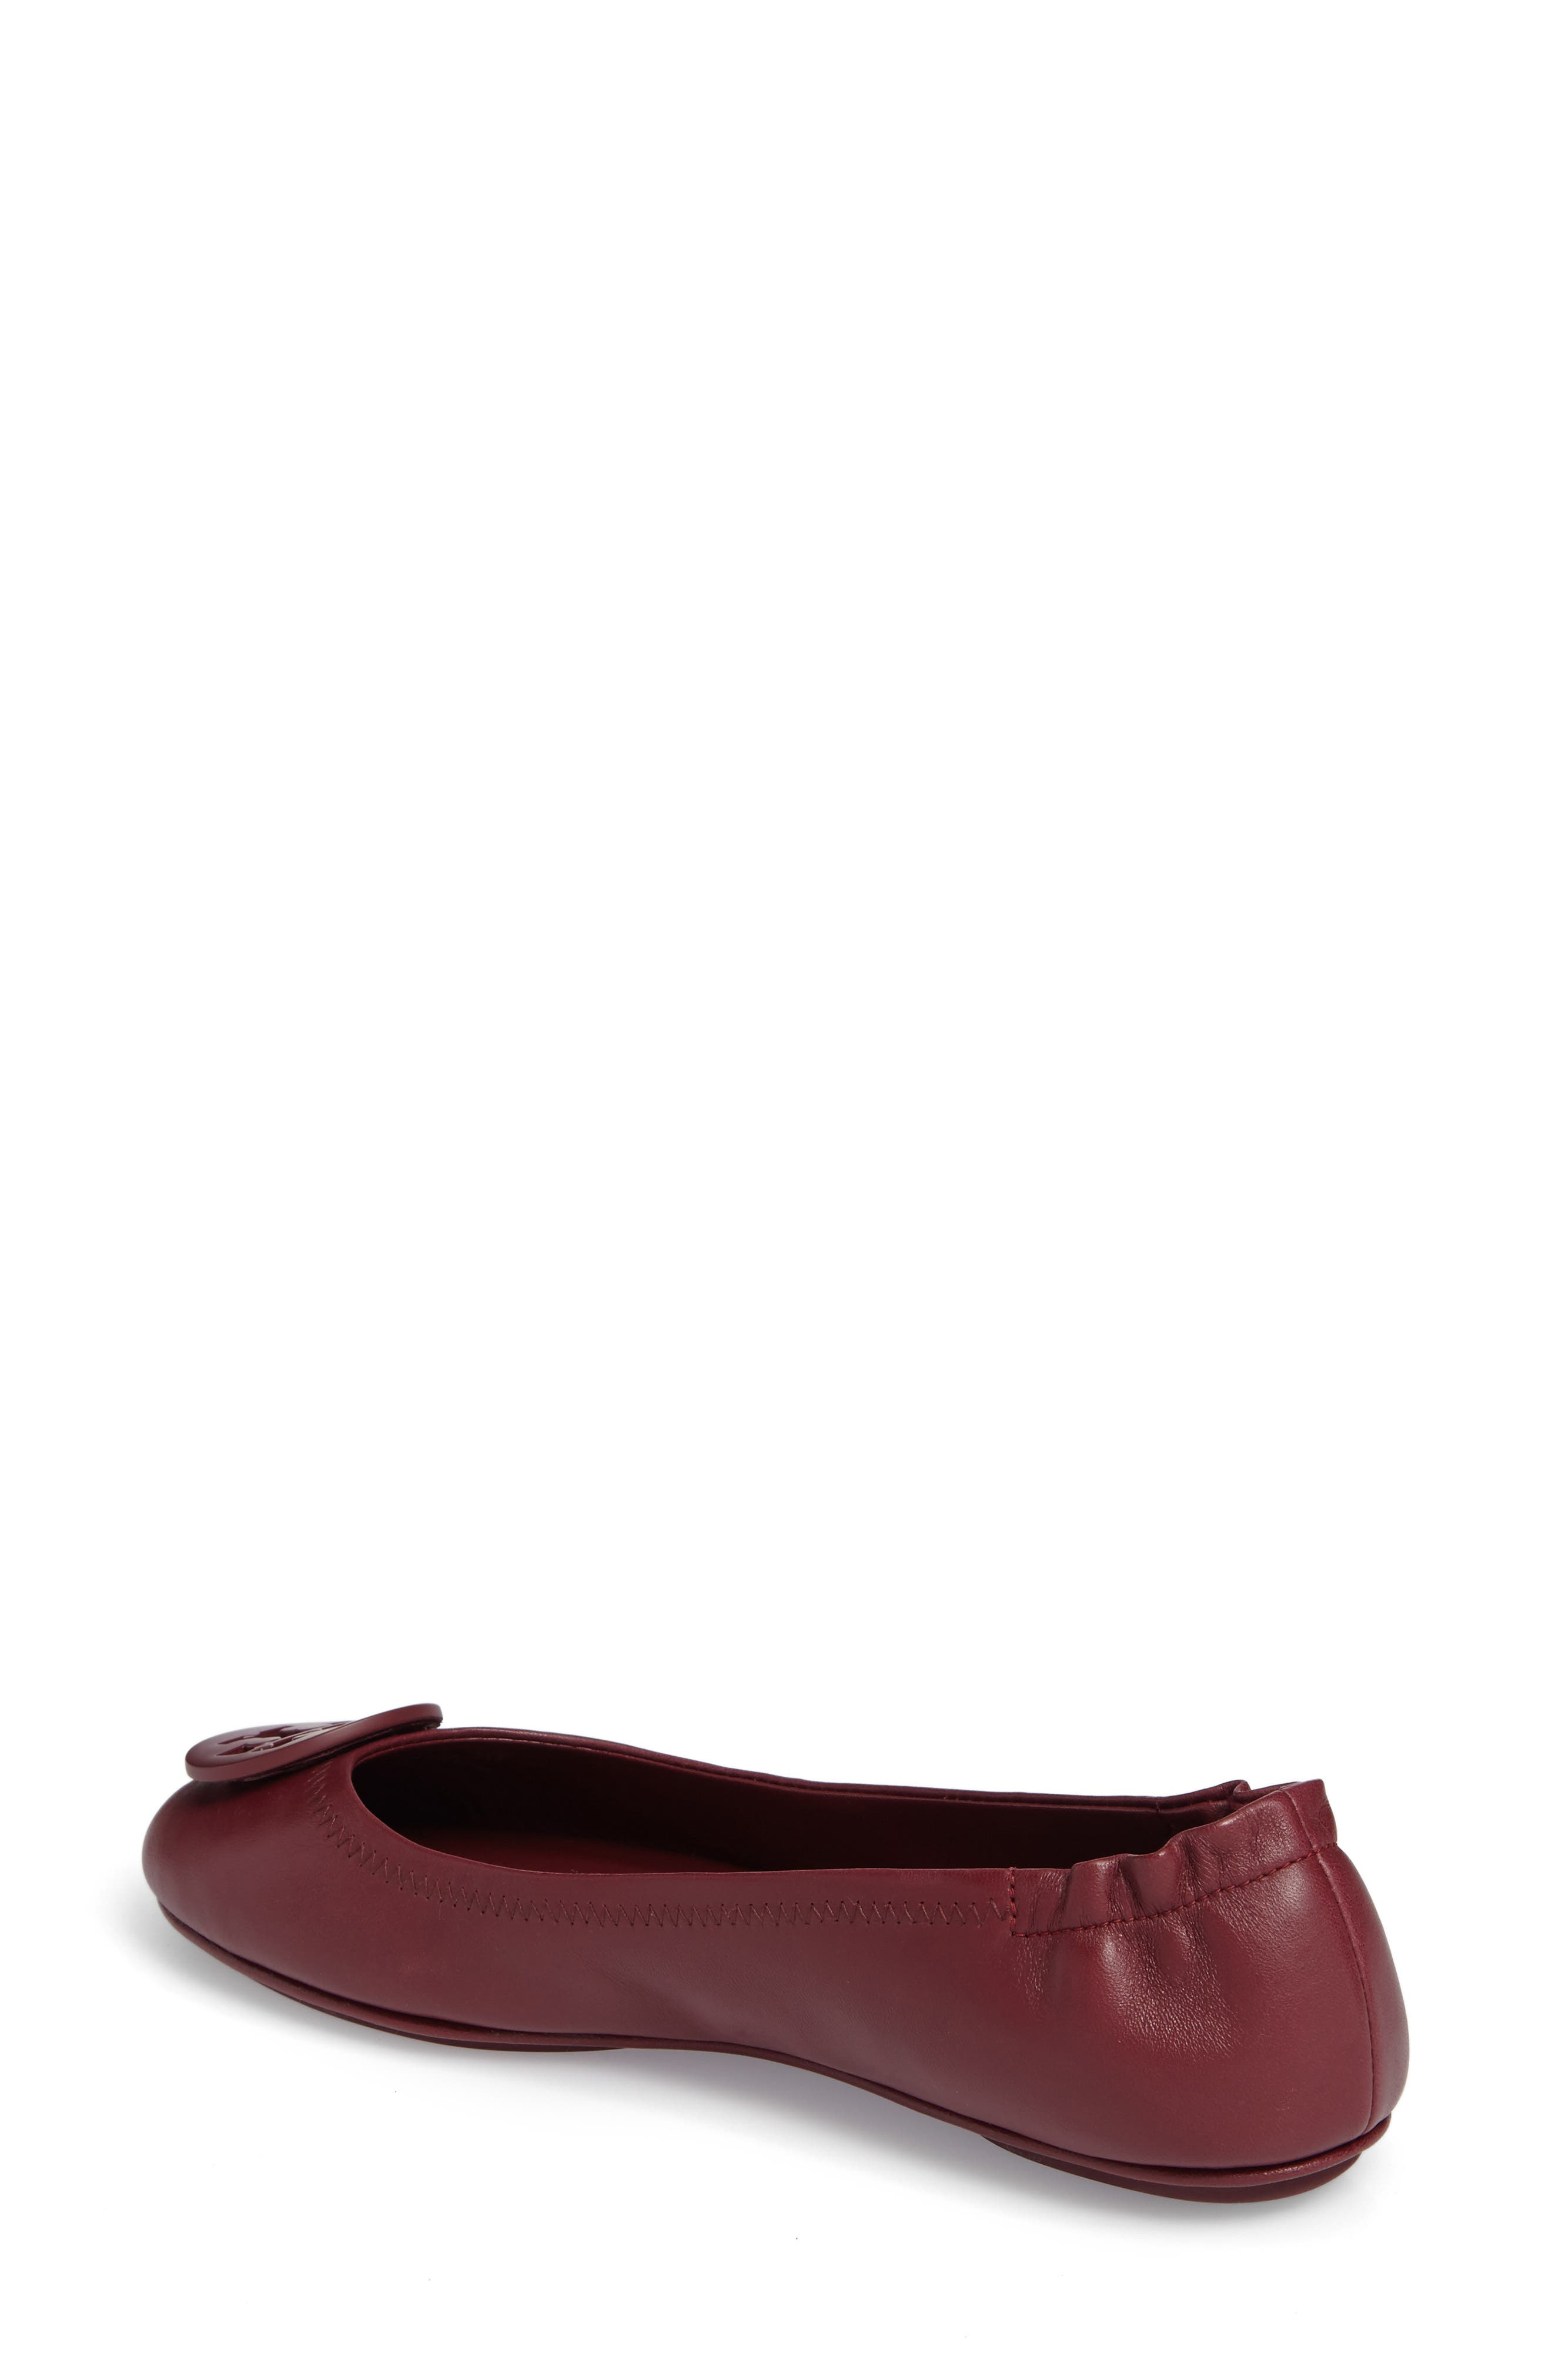 Alternate Image 2  - Tory Burch 'Minnie' Travel Ballet Flat (Women)